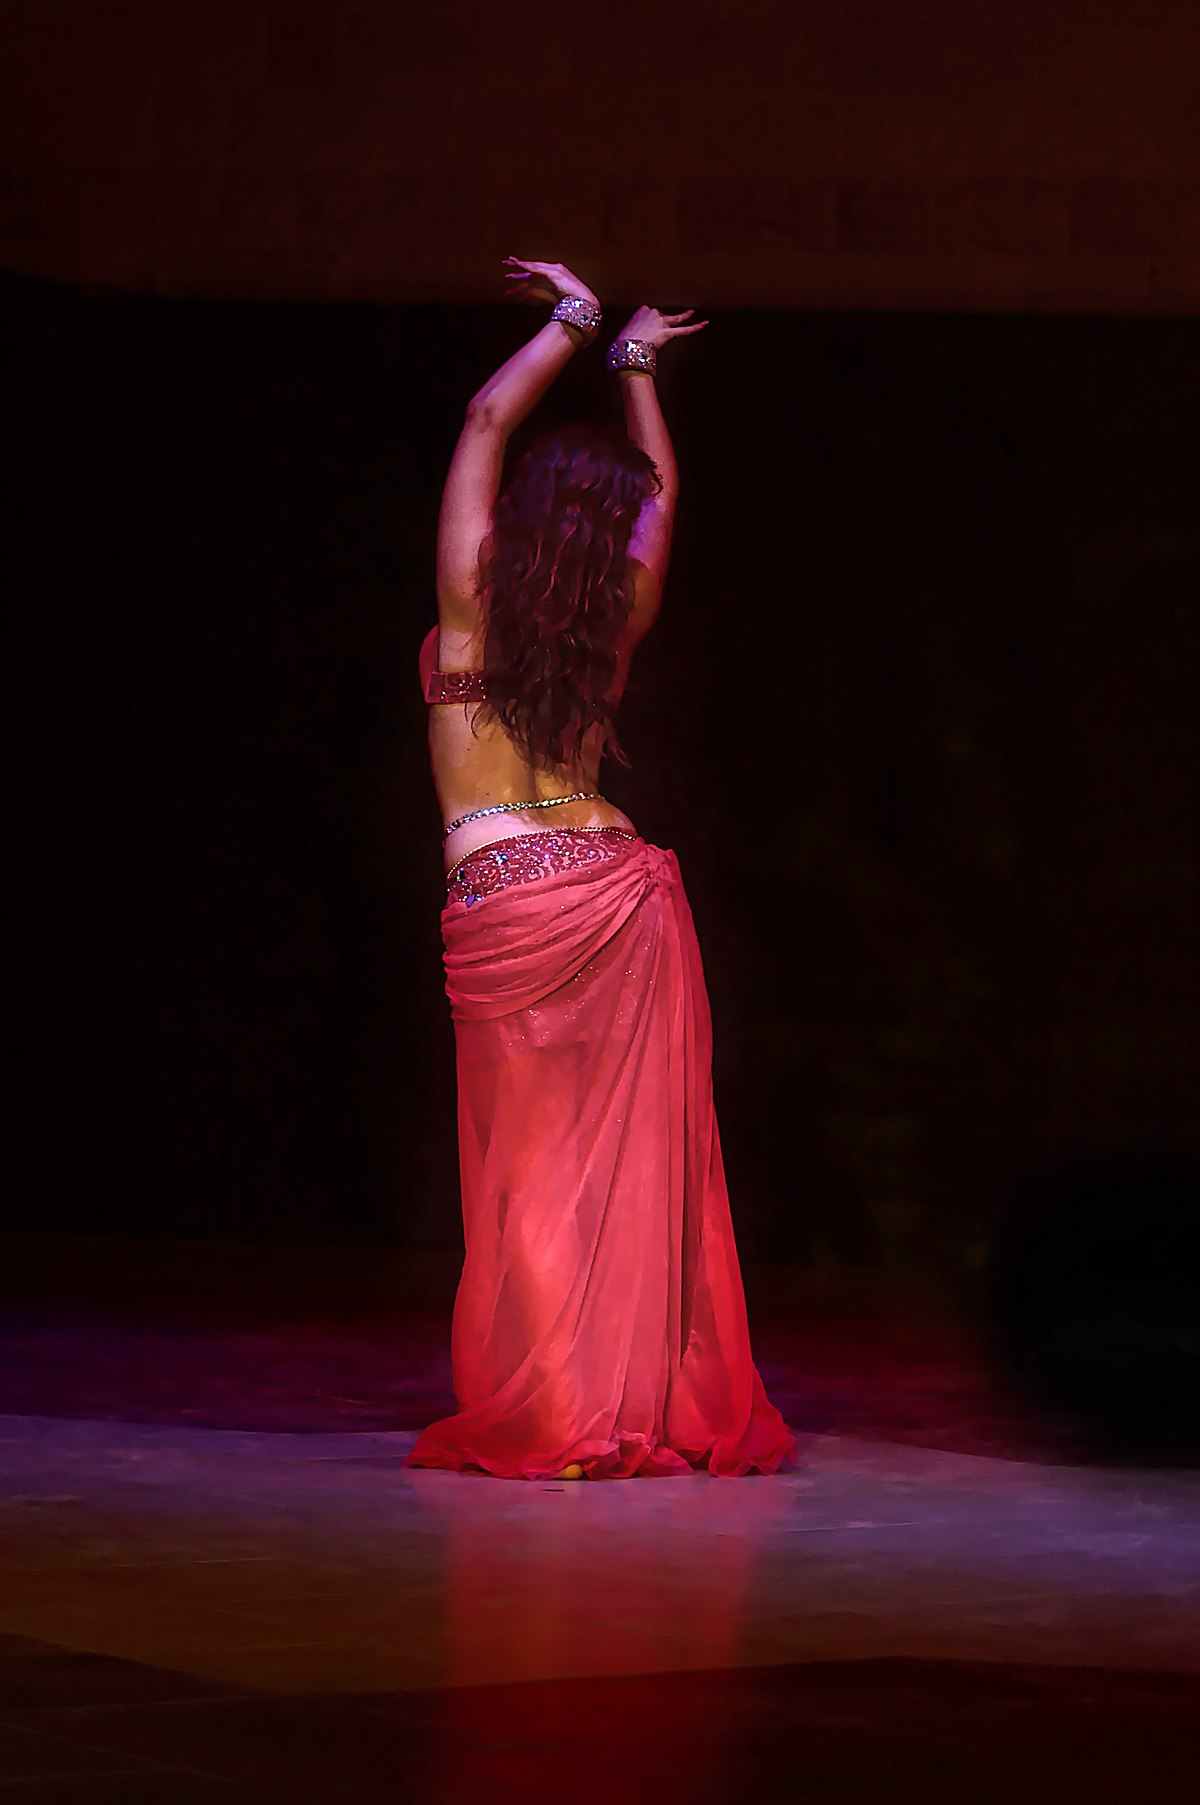 Arab Dance Wikipedia